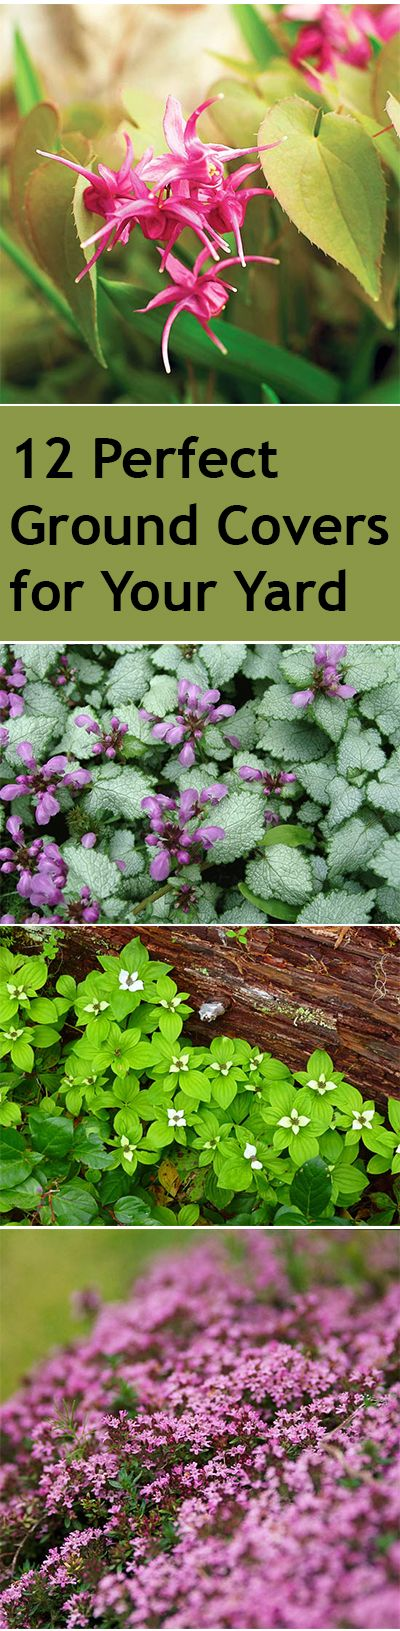 Ground cover plants, garden ground covers, popular pin, gardening, gardening hacks, ground cover shrubs, yard and landscape.